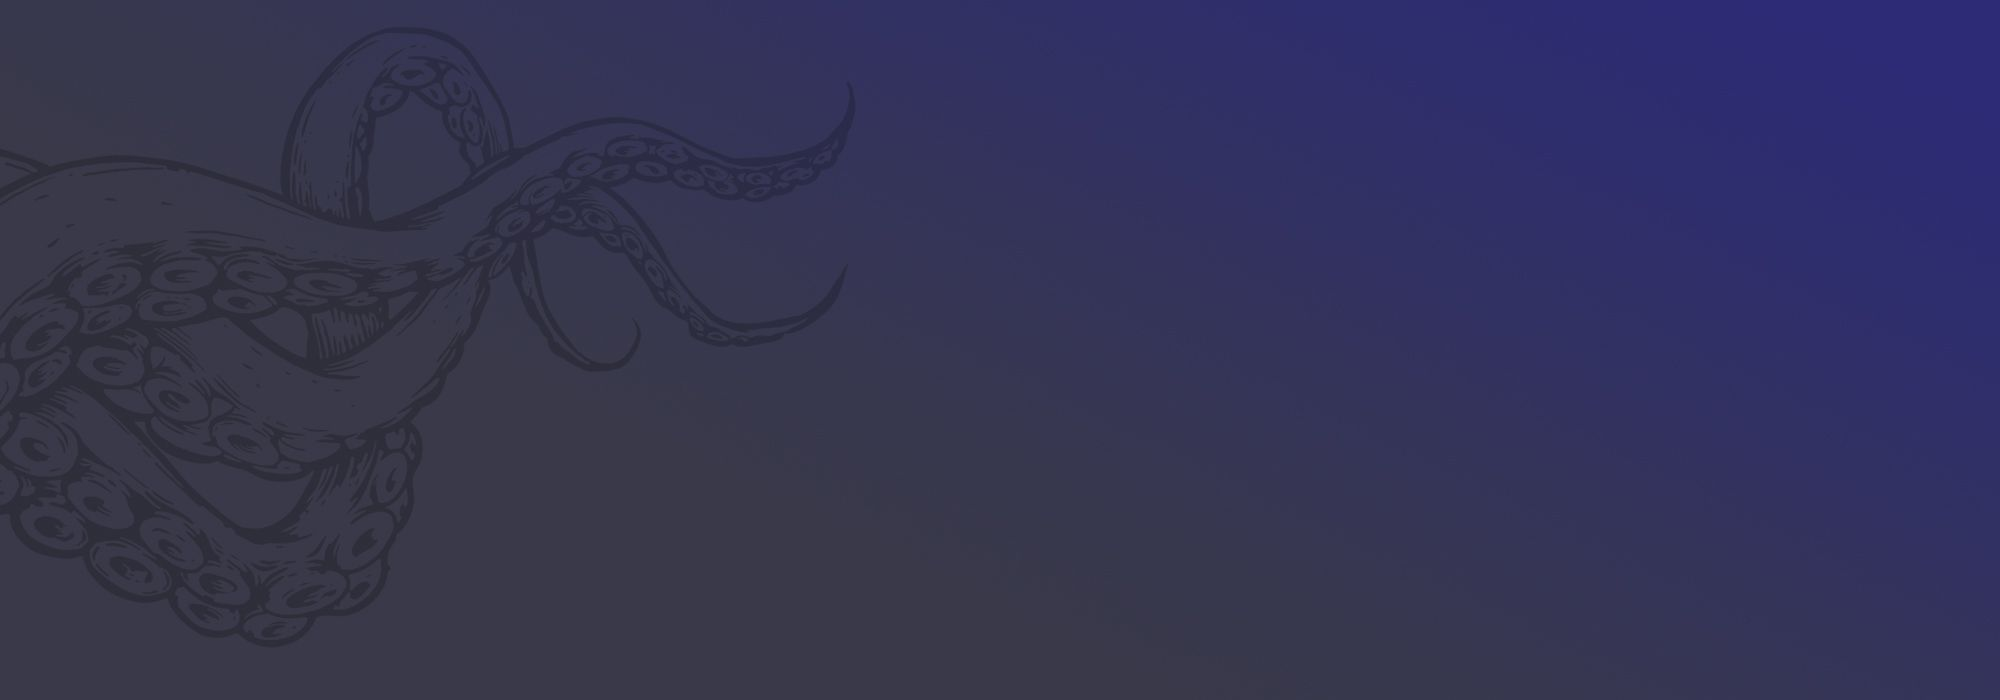 Hot Octopuss Tentacle Background - grey to blue